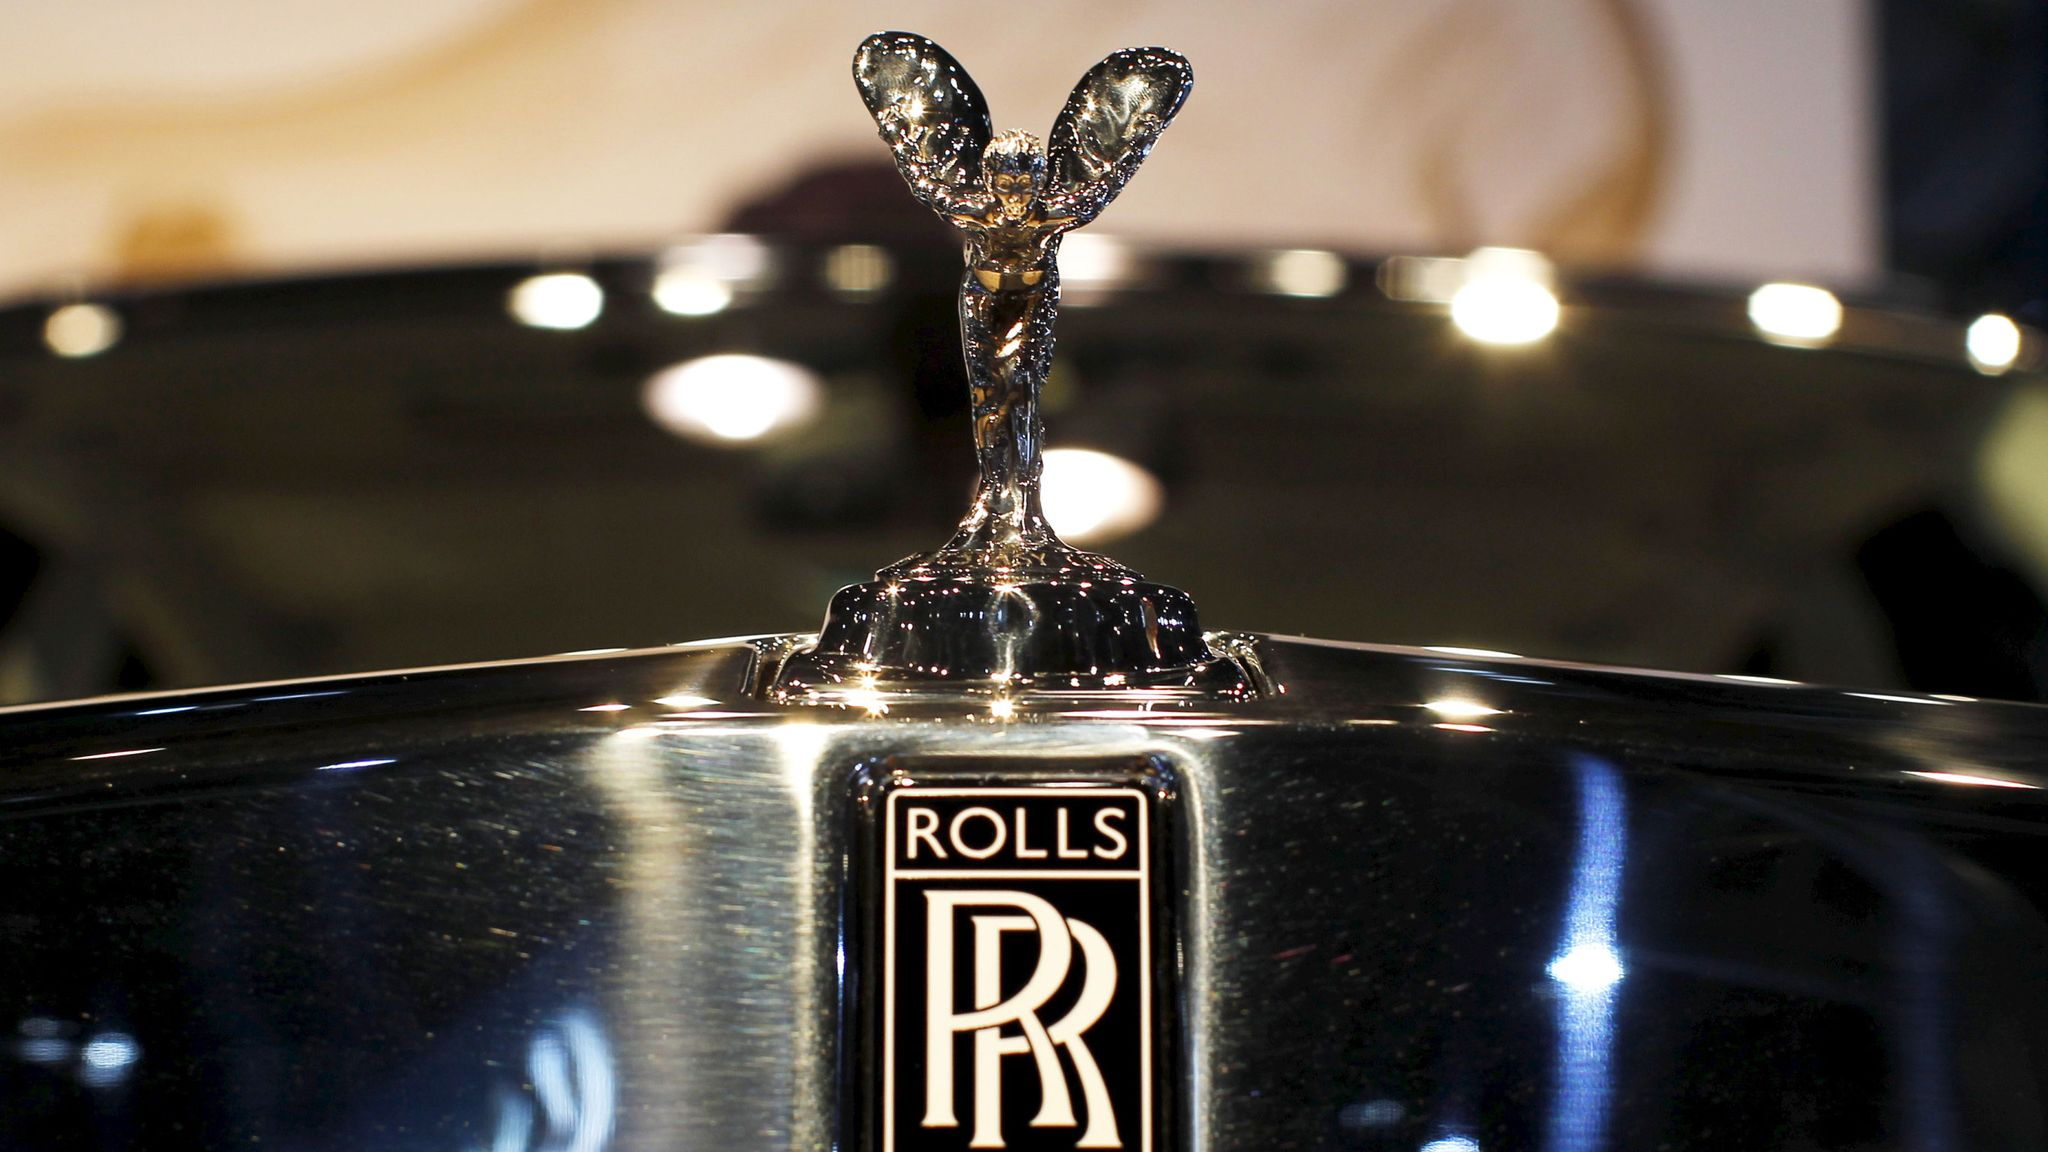 Uk To Remain Home Of Rolls Royce After Remarkable Sales Business News Sky News